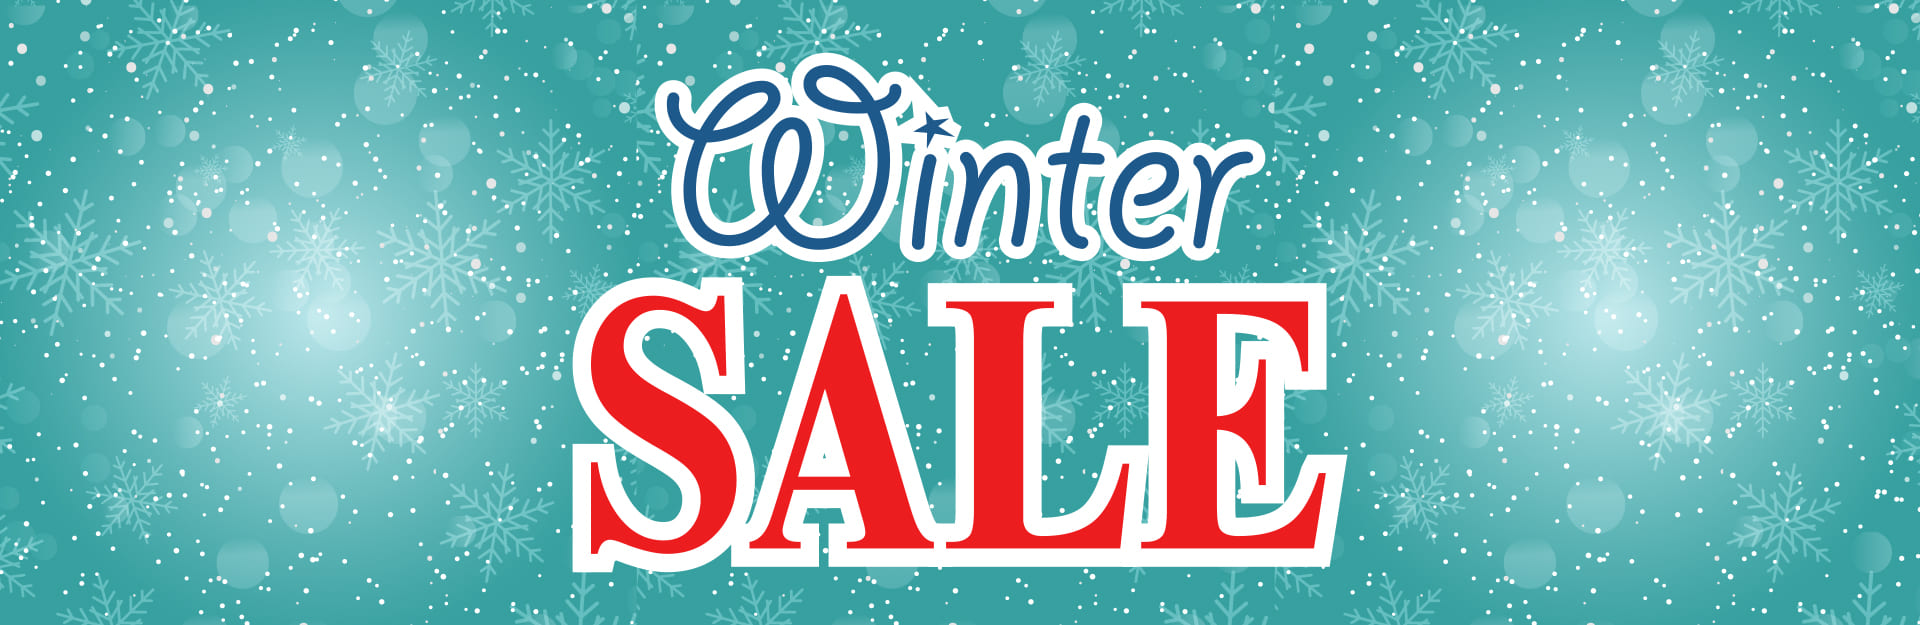 FINAL WINTER SALES SMART KIDS